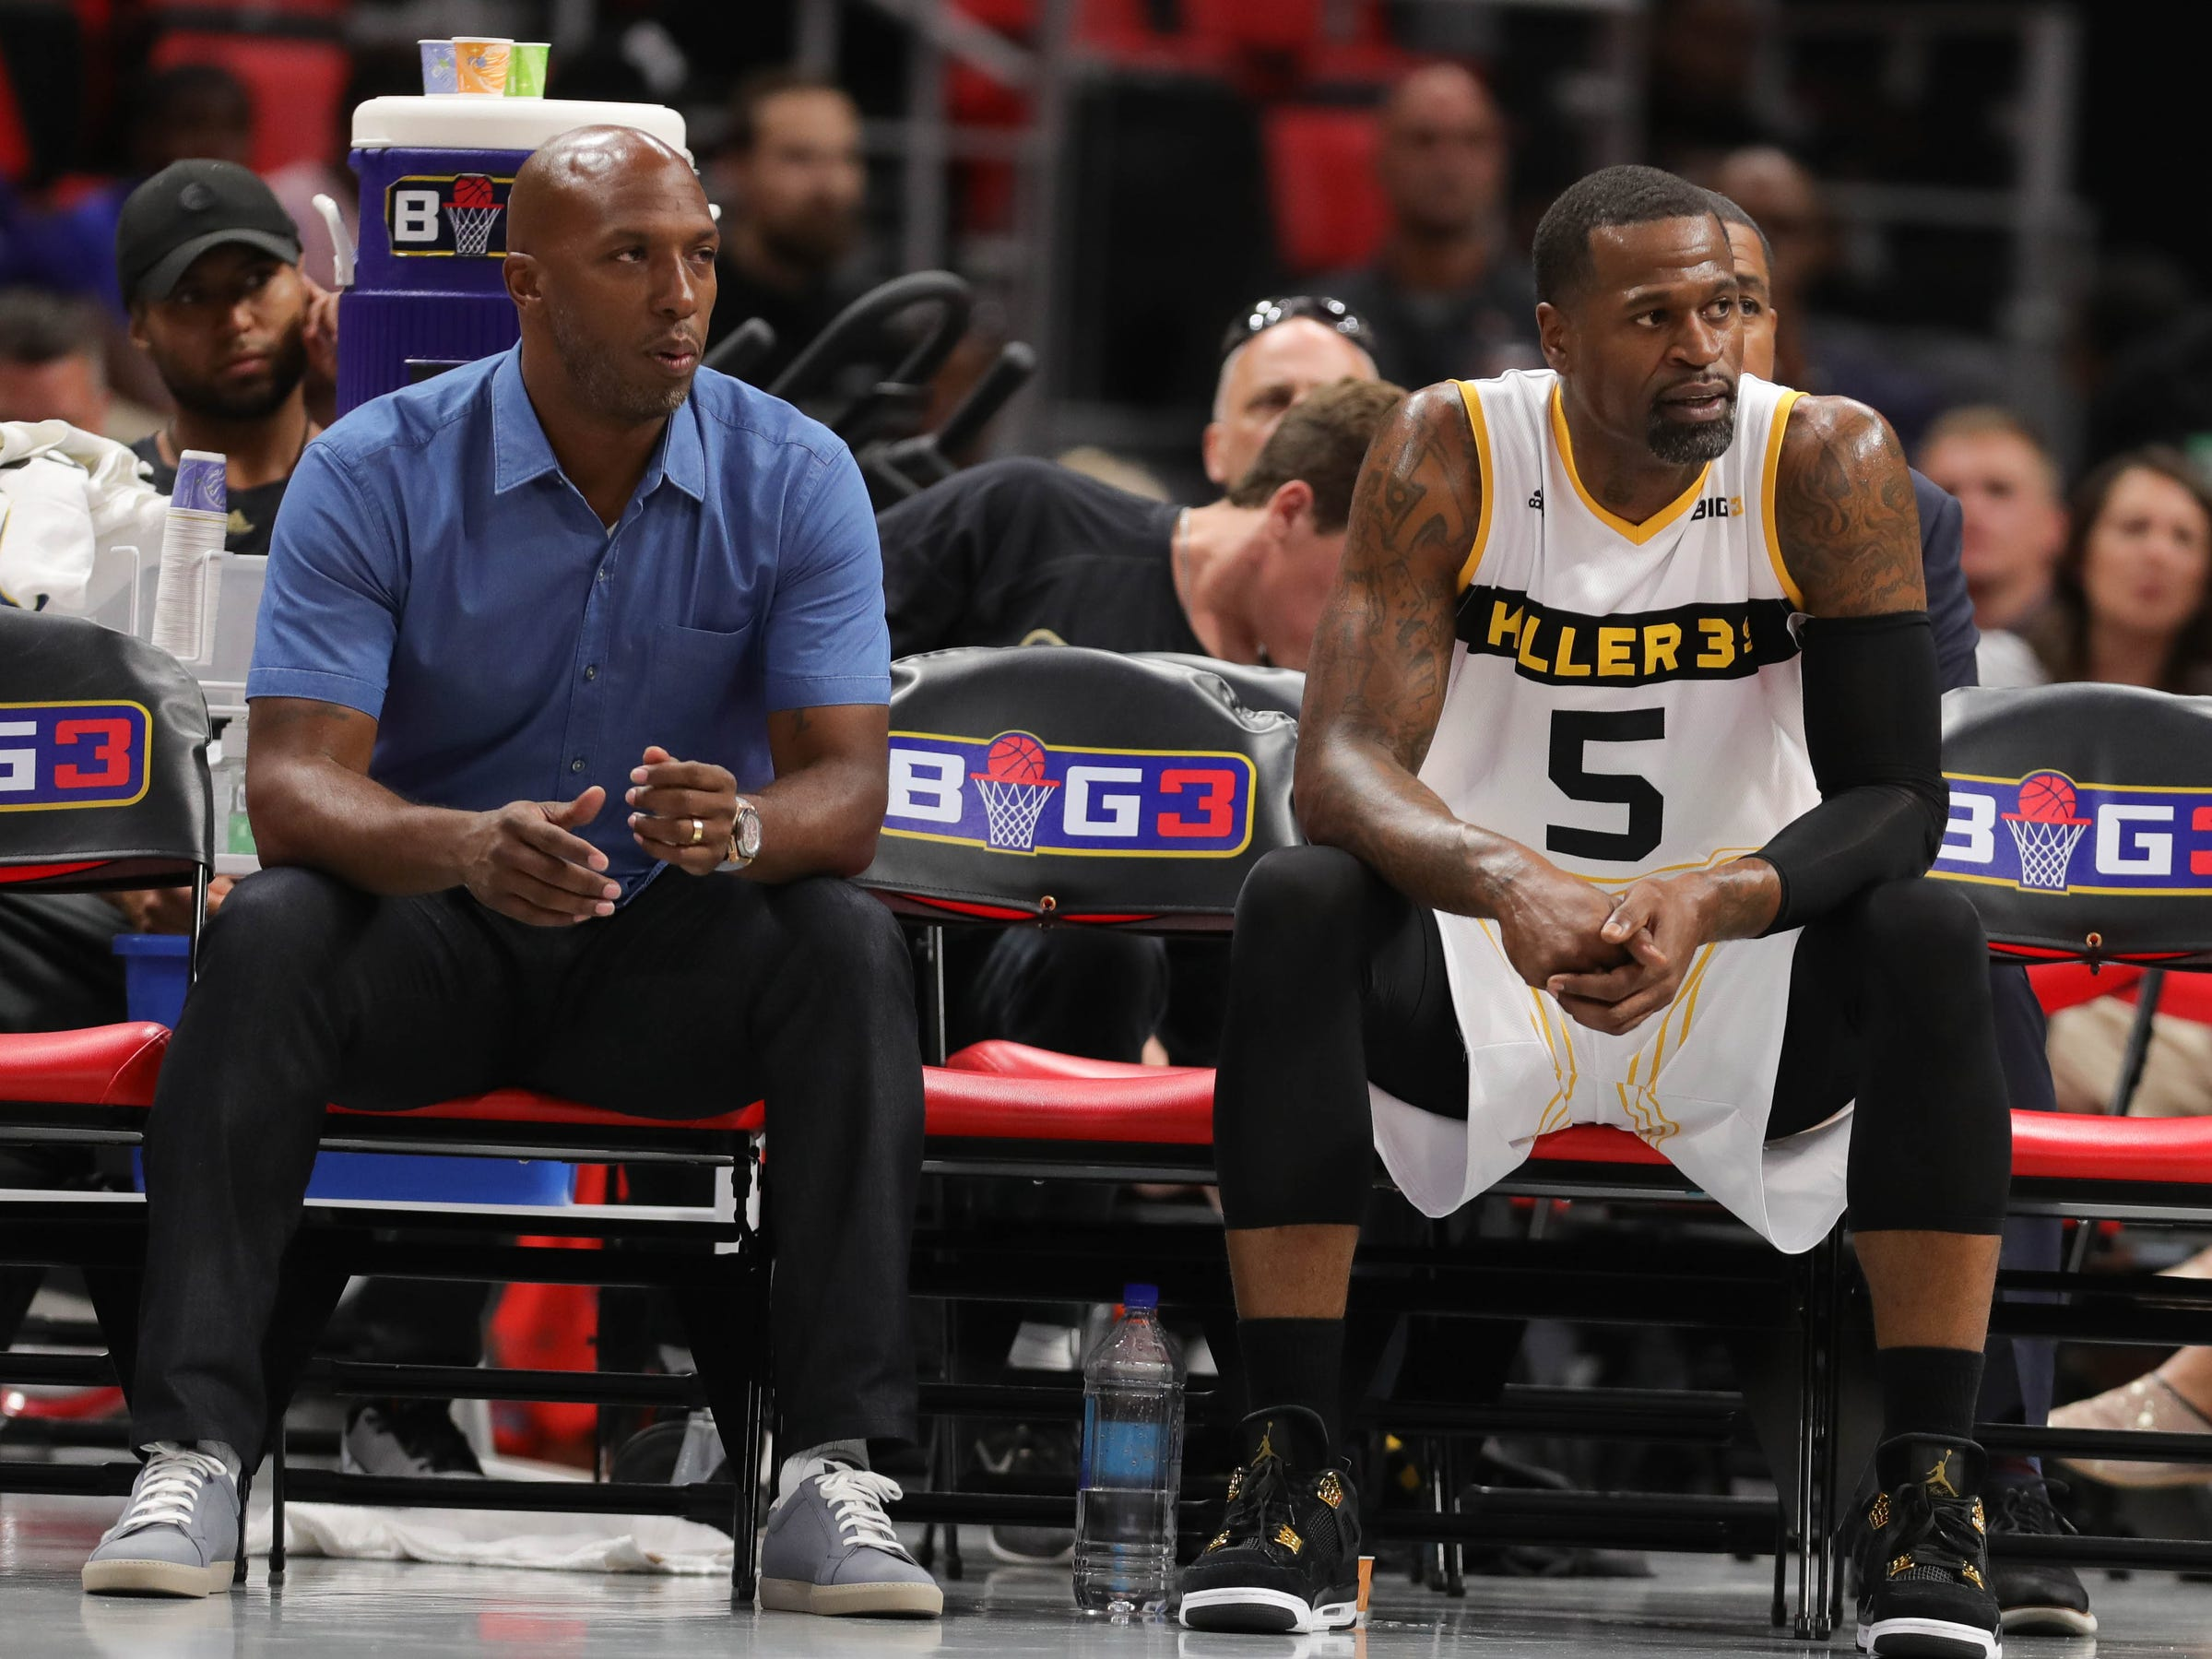 Chauncey Billups and Steven Jackson on the Killer 3s bench during BIG3 action against Trilogy on Friday, July 13, 2018 at Little Caesars Arena in Detroit.